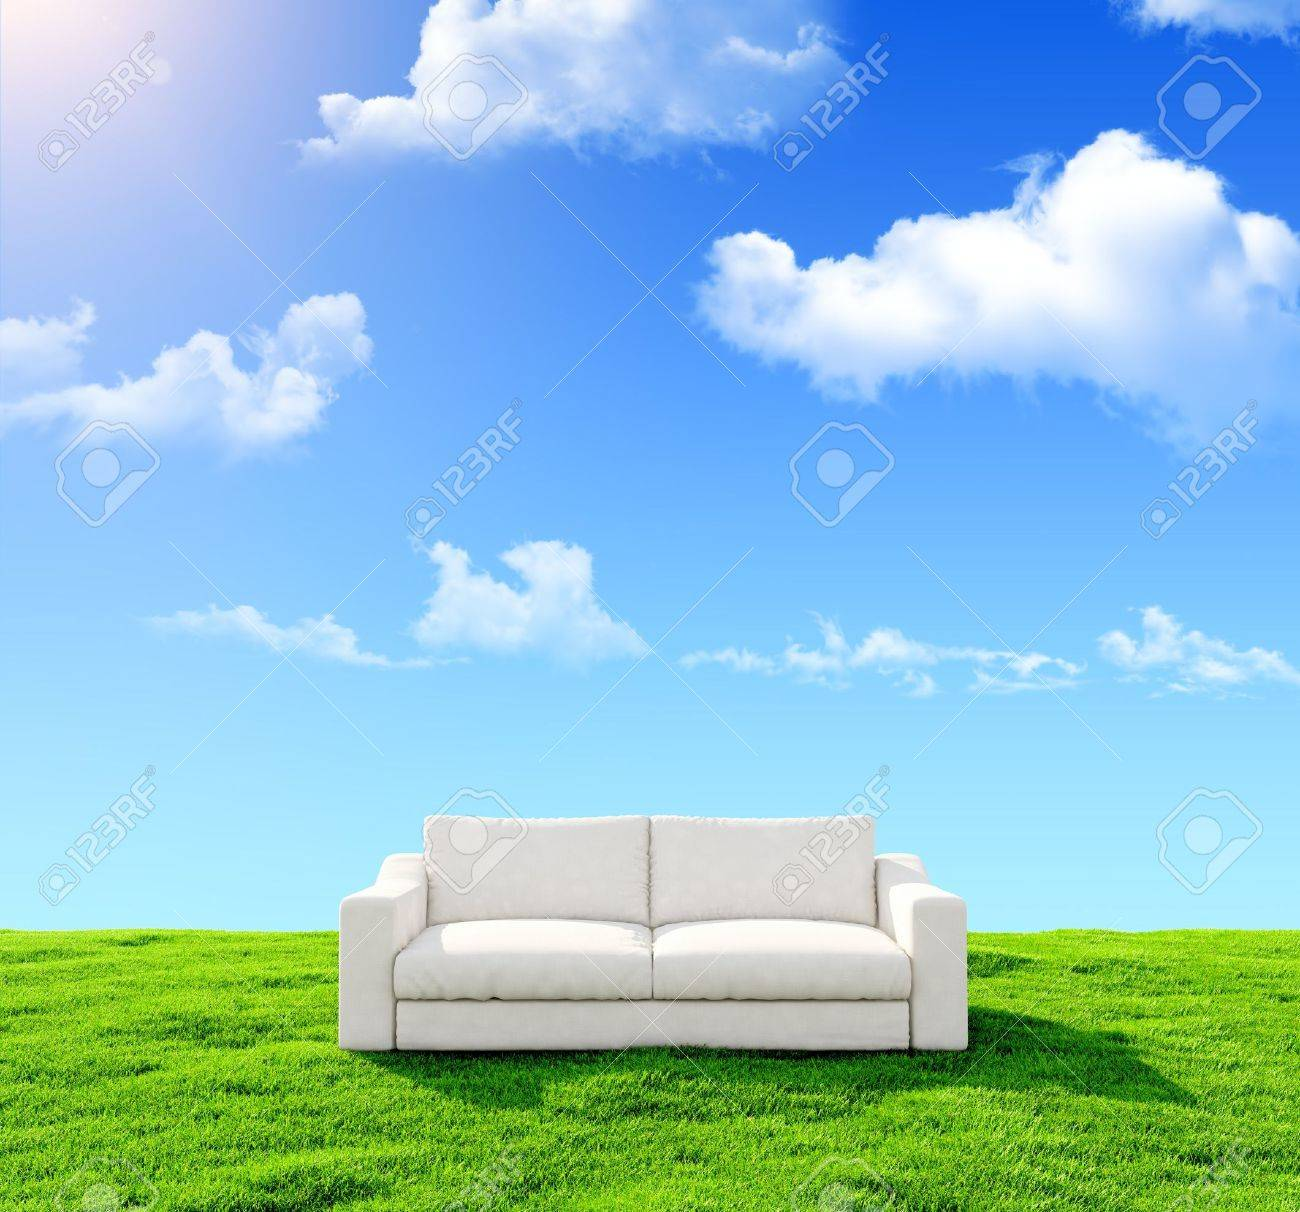 Grass Couch Couch Grass Images Stock Pictures Royalty Free Couch Grass